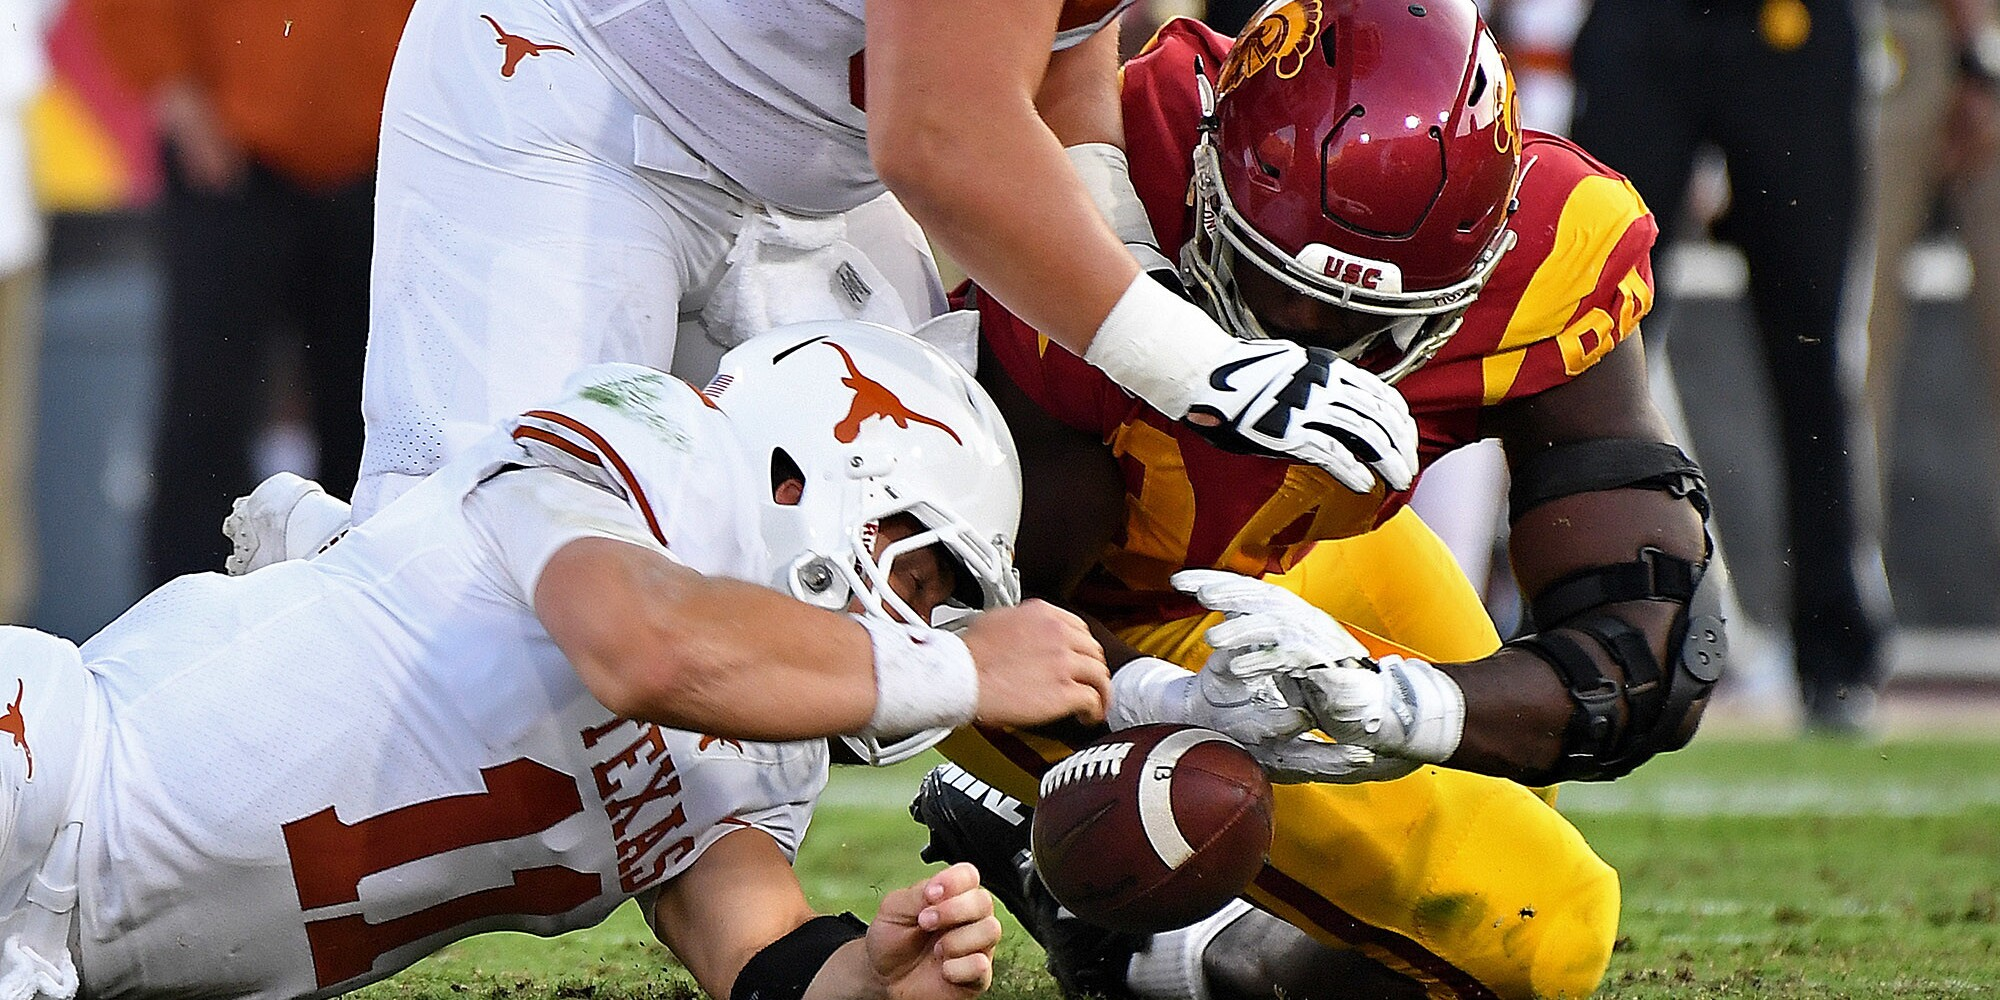 USC vs. Texas: Longhorns defeat the Trojans 37-14